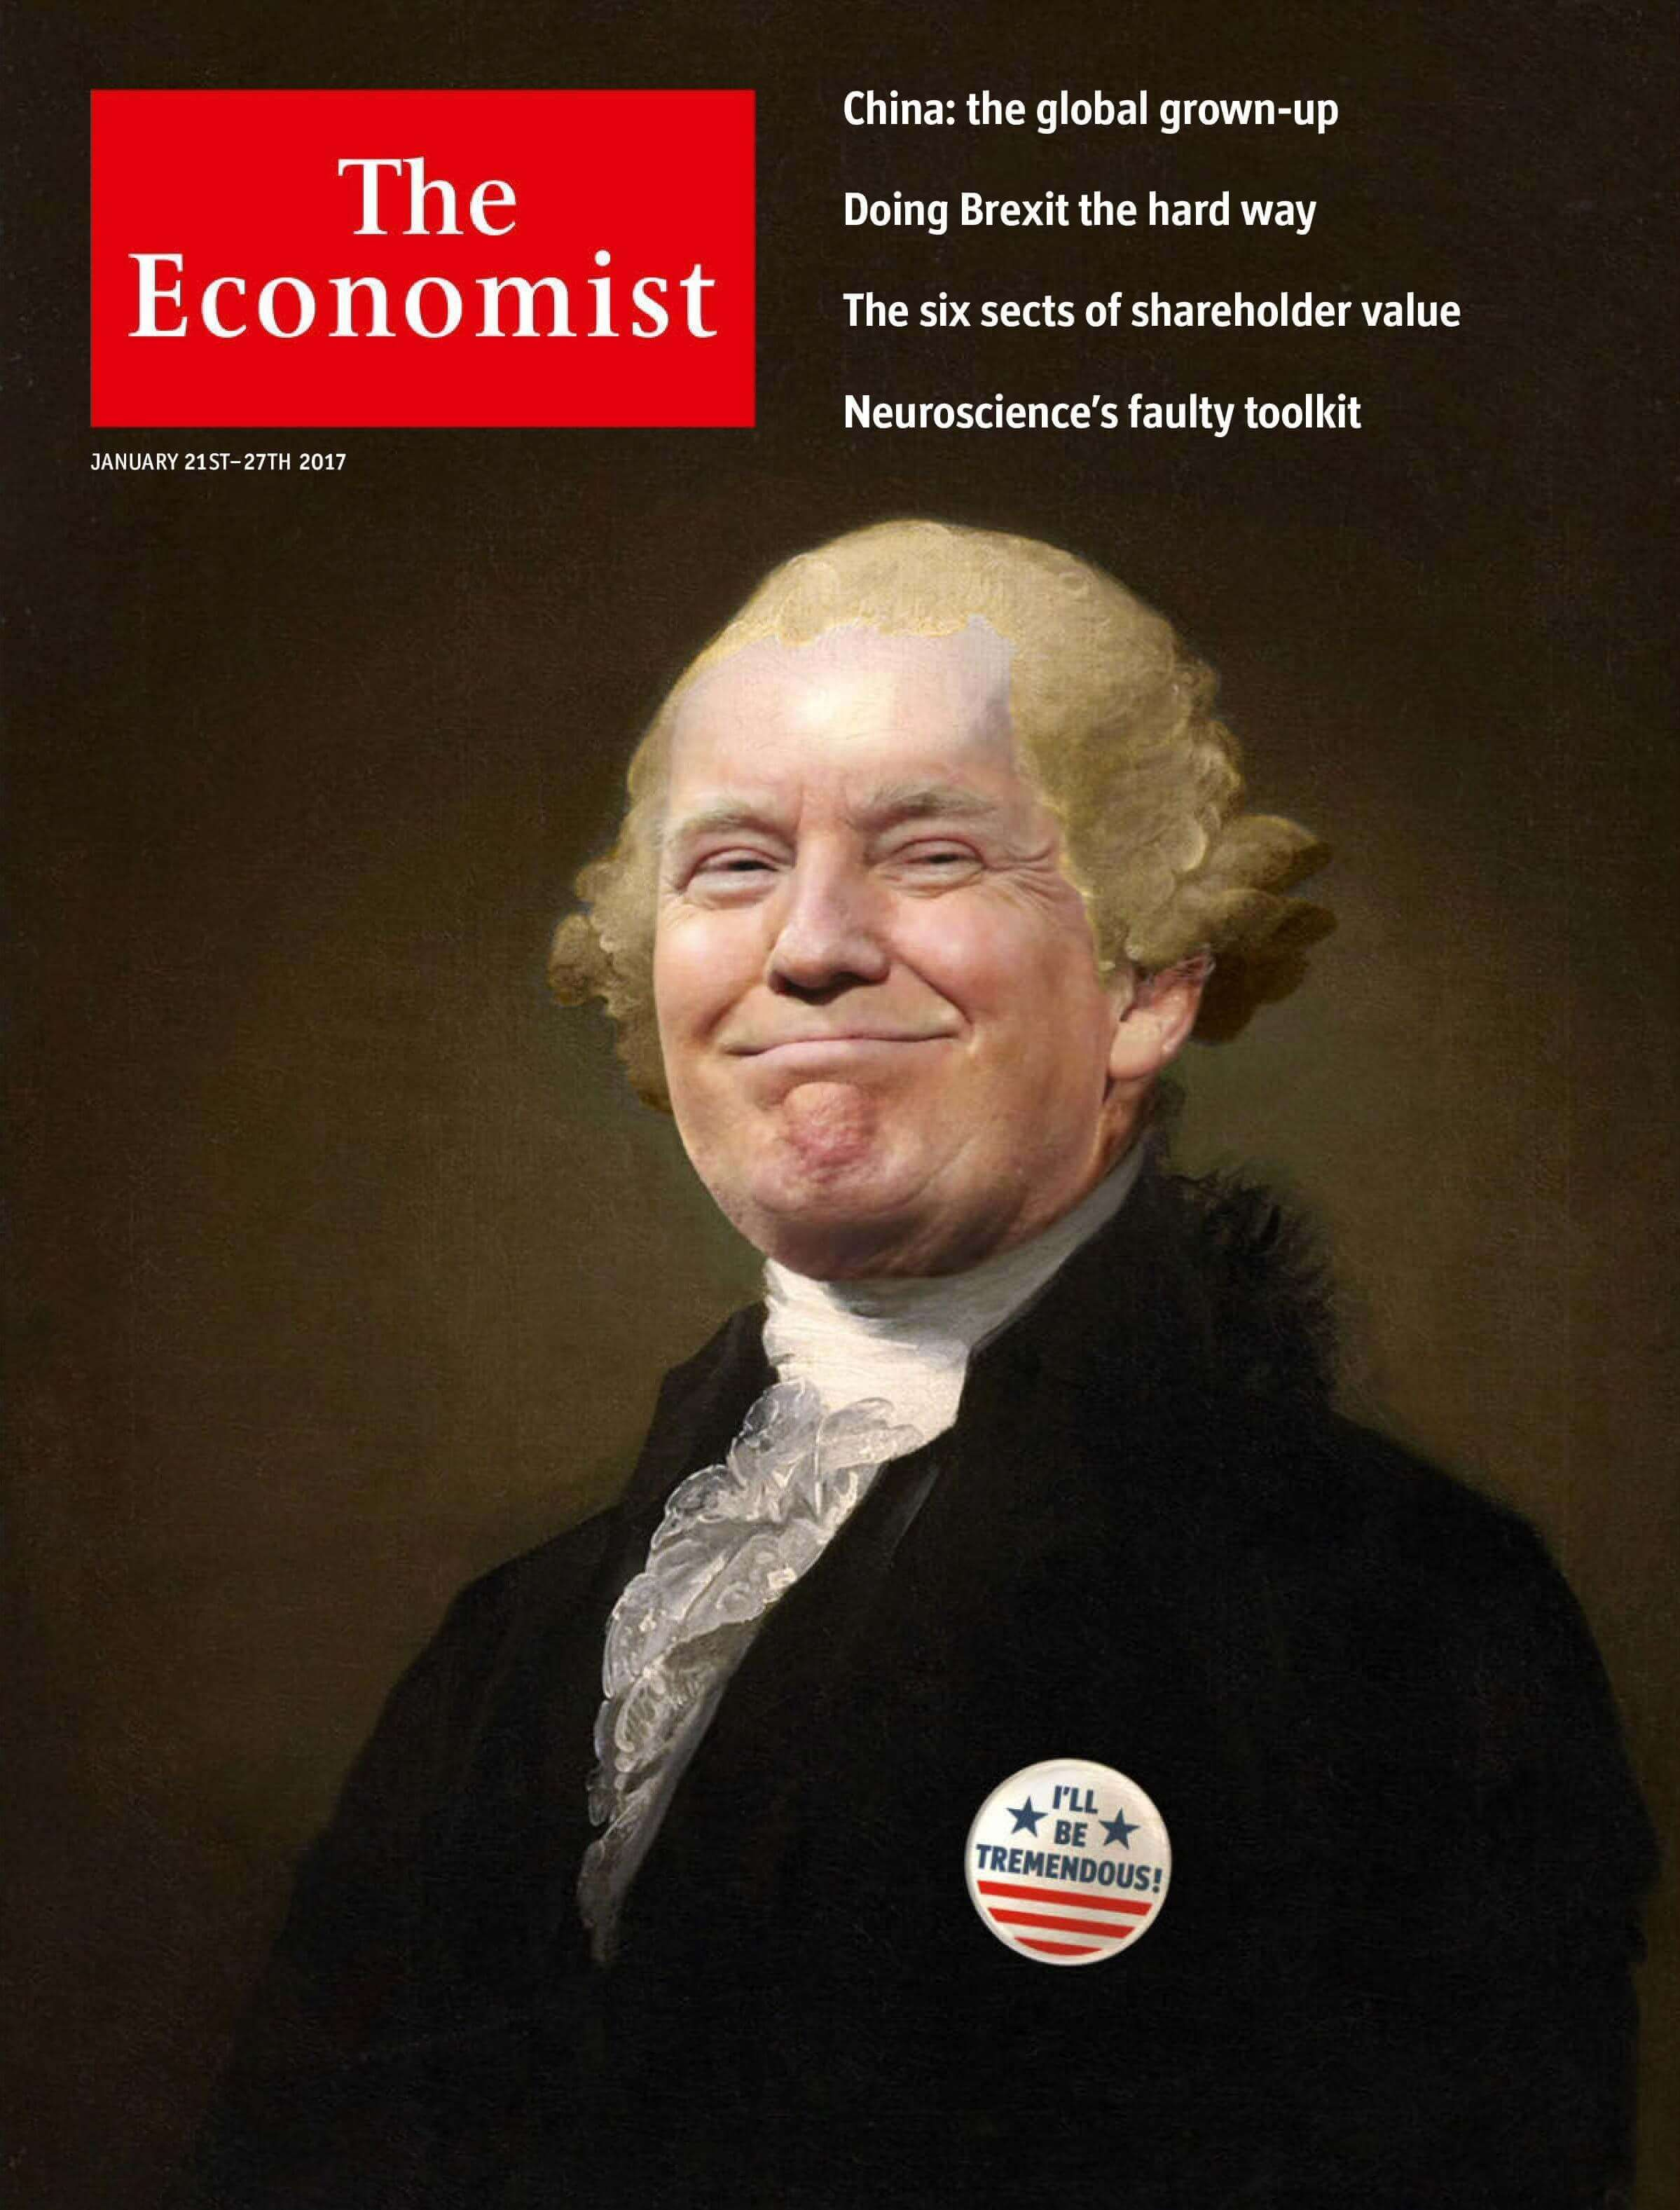 Donald Trump As George Washington On The Cover Of The